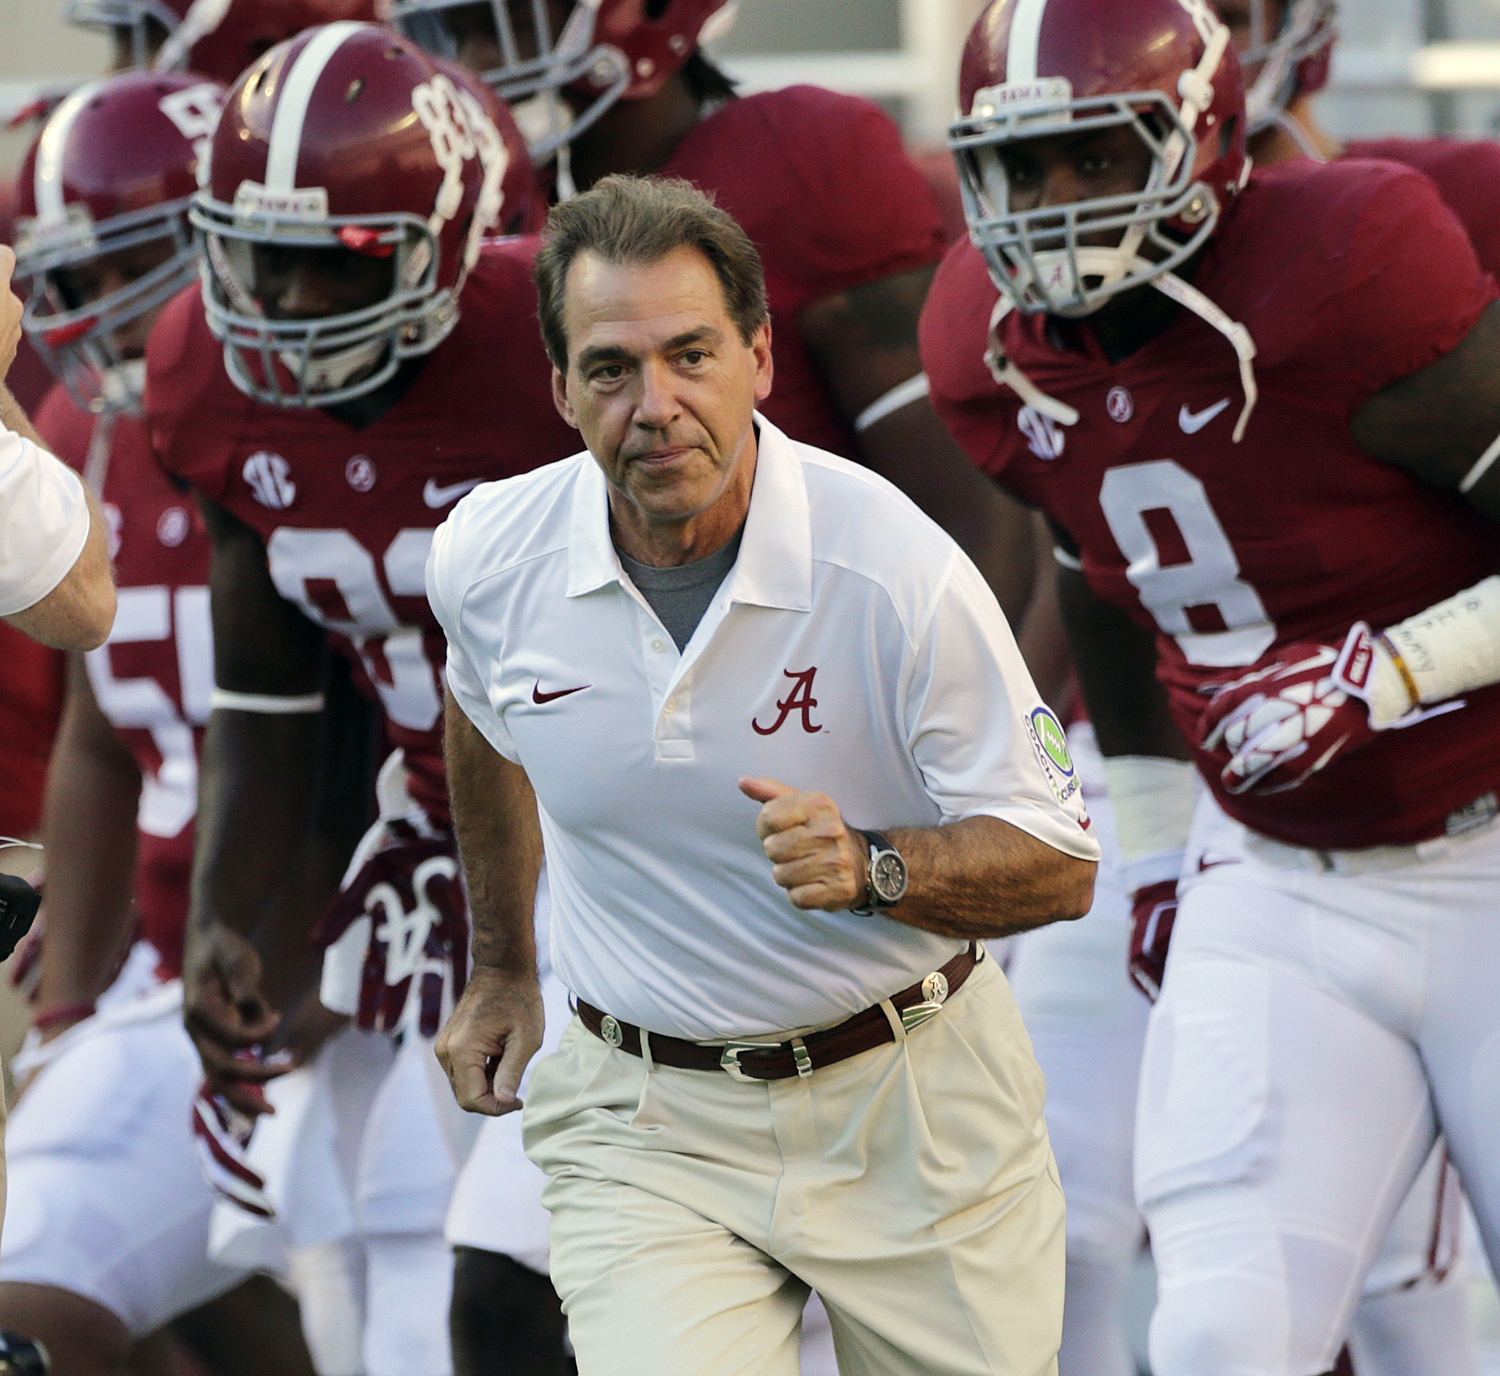 FILE - In this Sept. 28, 2013, file photo, Alabama head coach Nick Saban leads his team onto the field prior to an NCAA college football game against Mississippi in Tuscaloosa, Ala. The defending national champion Crimson Tide is the No. 1 team in The Ass